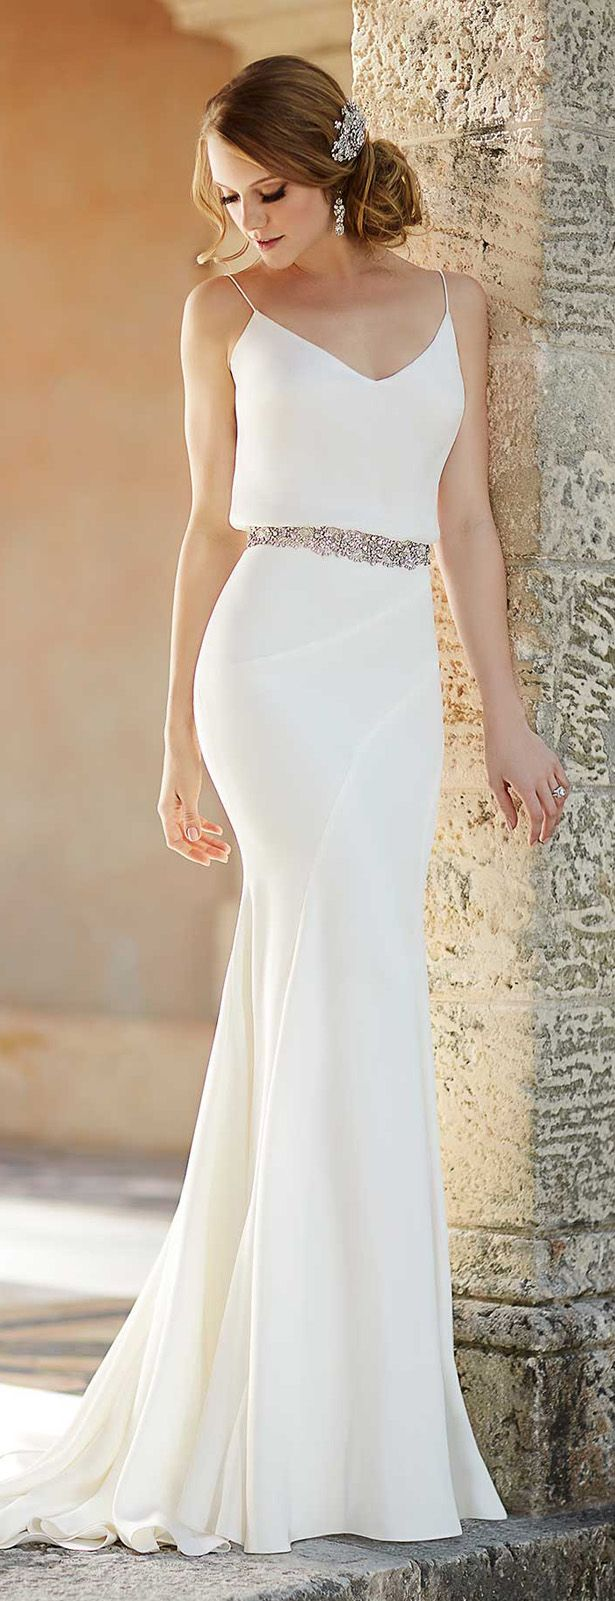 Simple white wedding dresses  Martina Liana Spring  Bridal Collection   wedding dresses